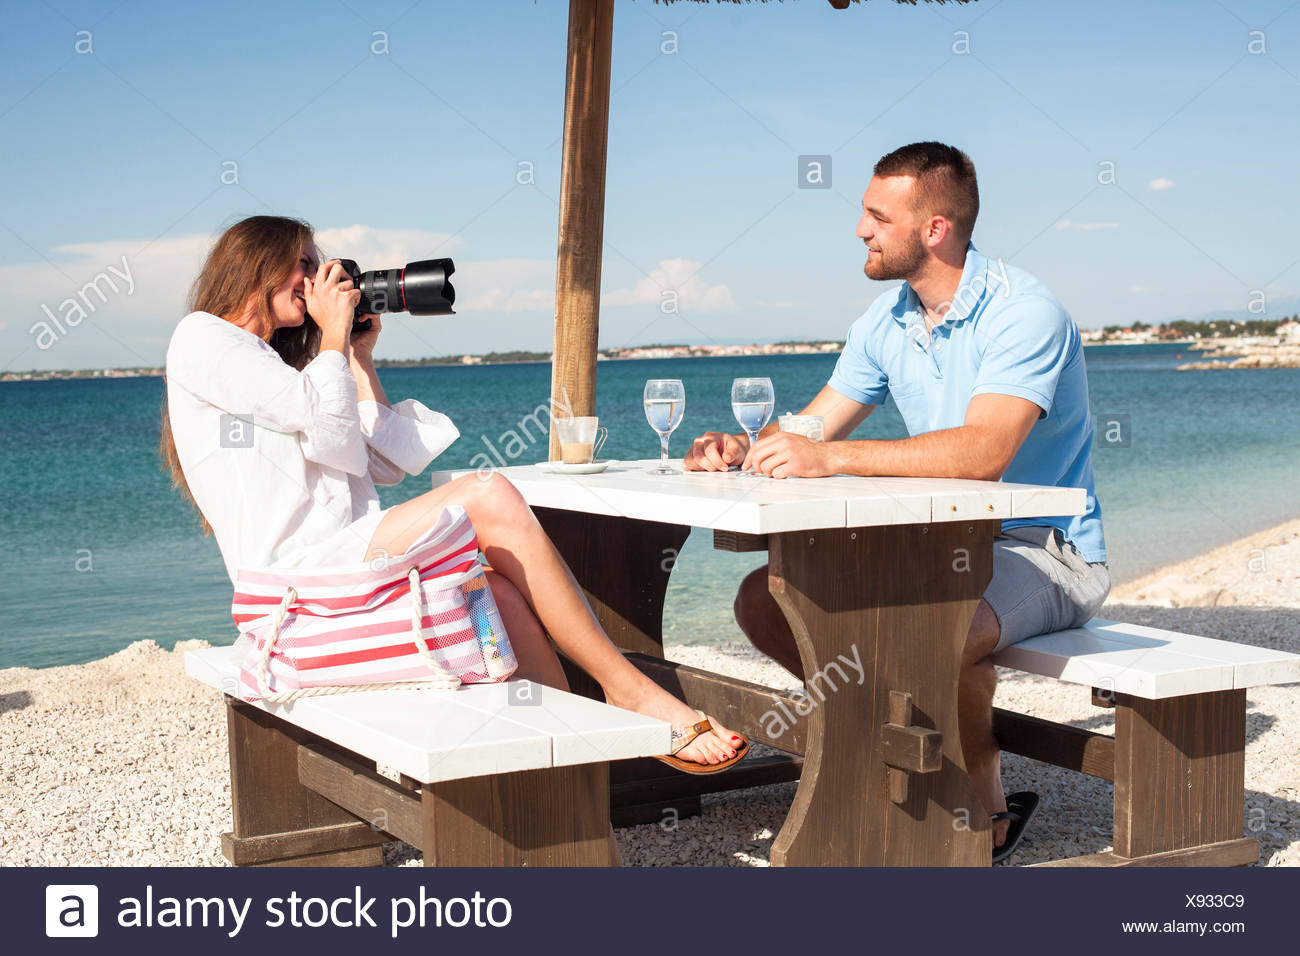 Young woman at beach bar taking photos of friend Stock Photo